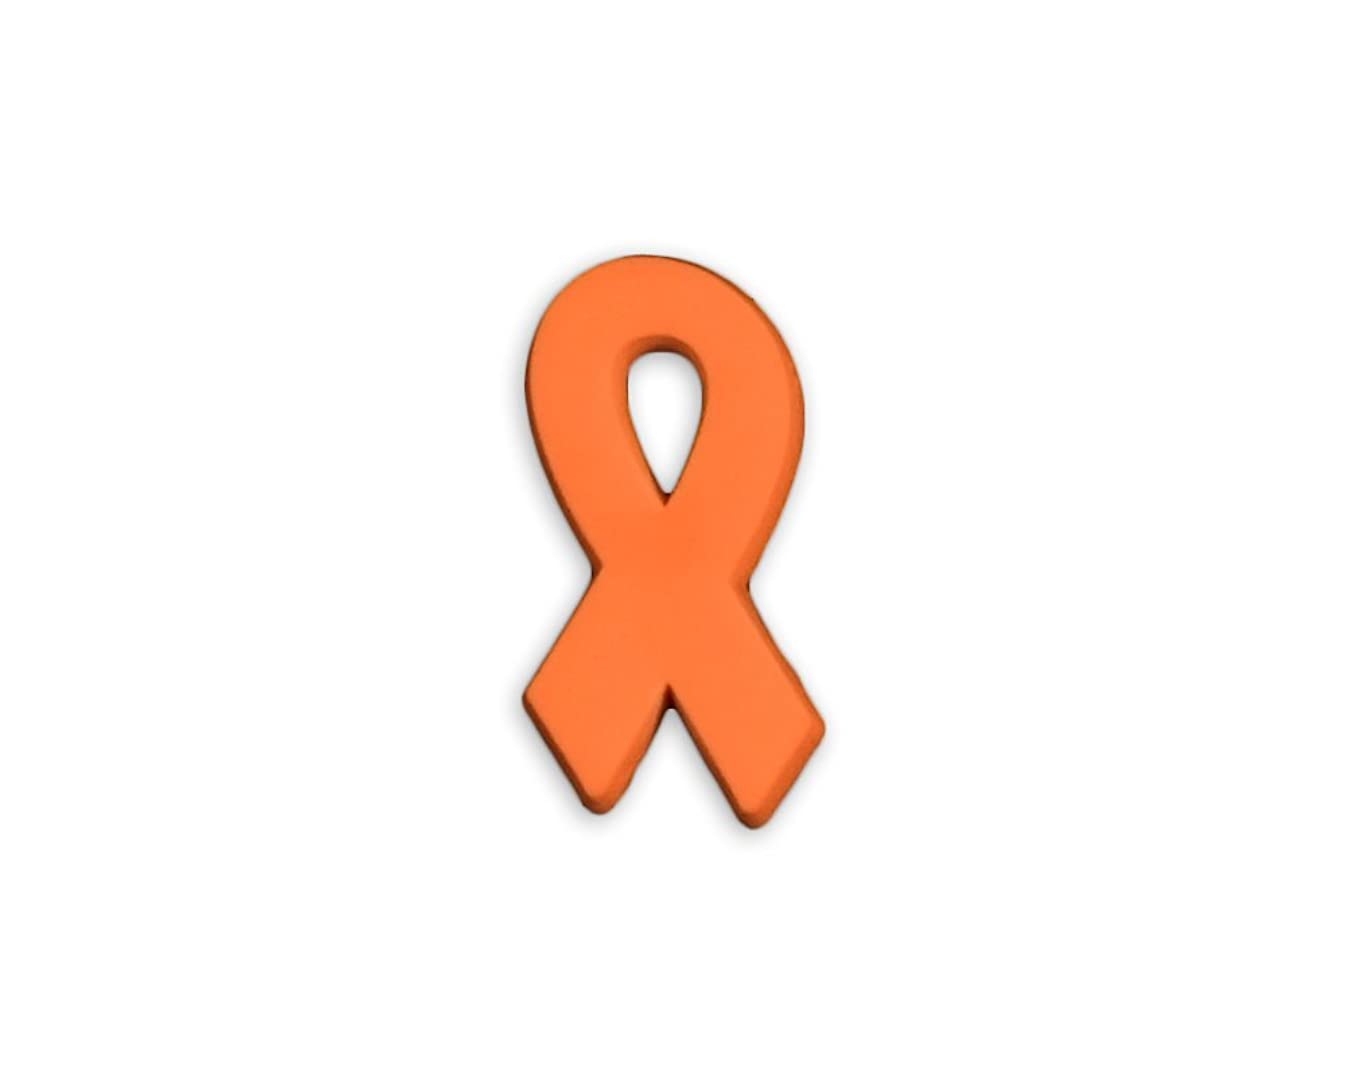 50 Pack Multiple Sclerosis Awareness Orange Ribbon Silicone Pins (50 Pins in a Bag)